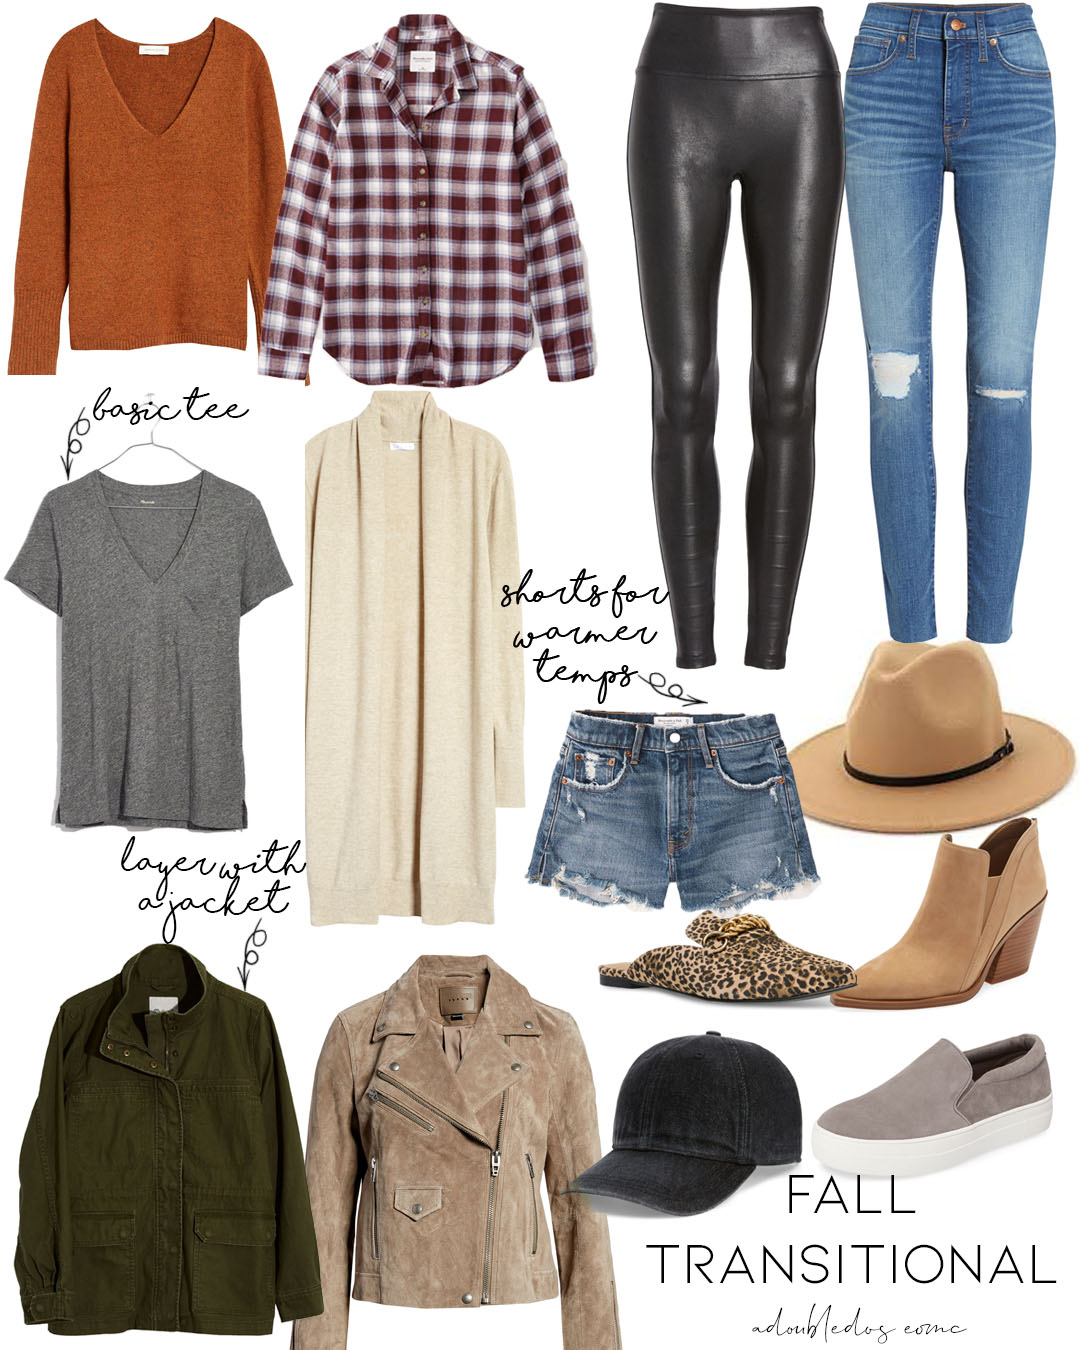 lifestyle and fashion blogger alexis belbel sharing some fall transitional pieces to transition your wardrobe from summer to fall | adoubledose.com